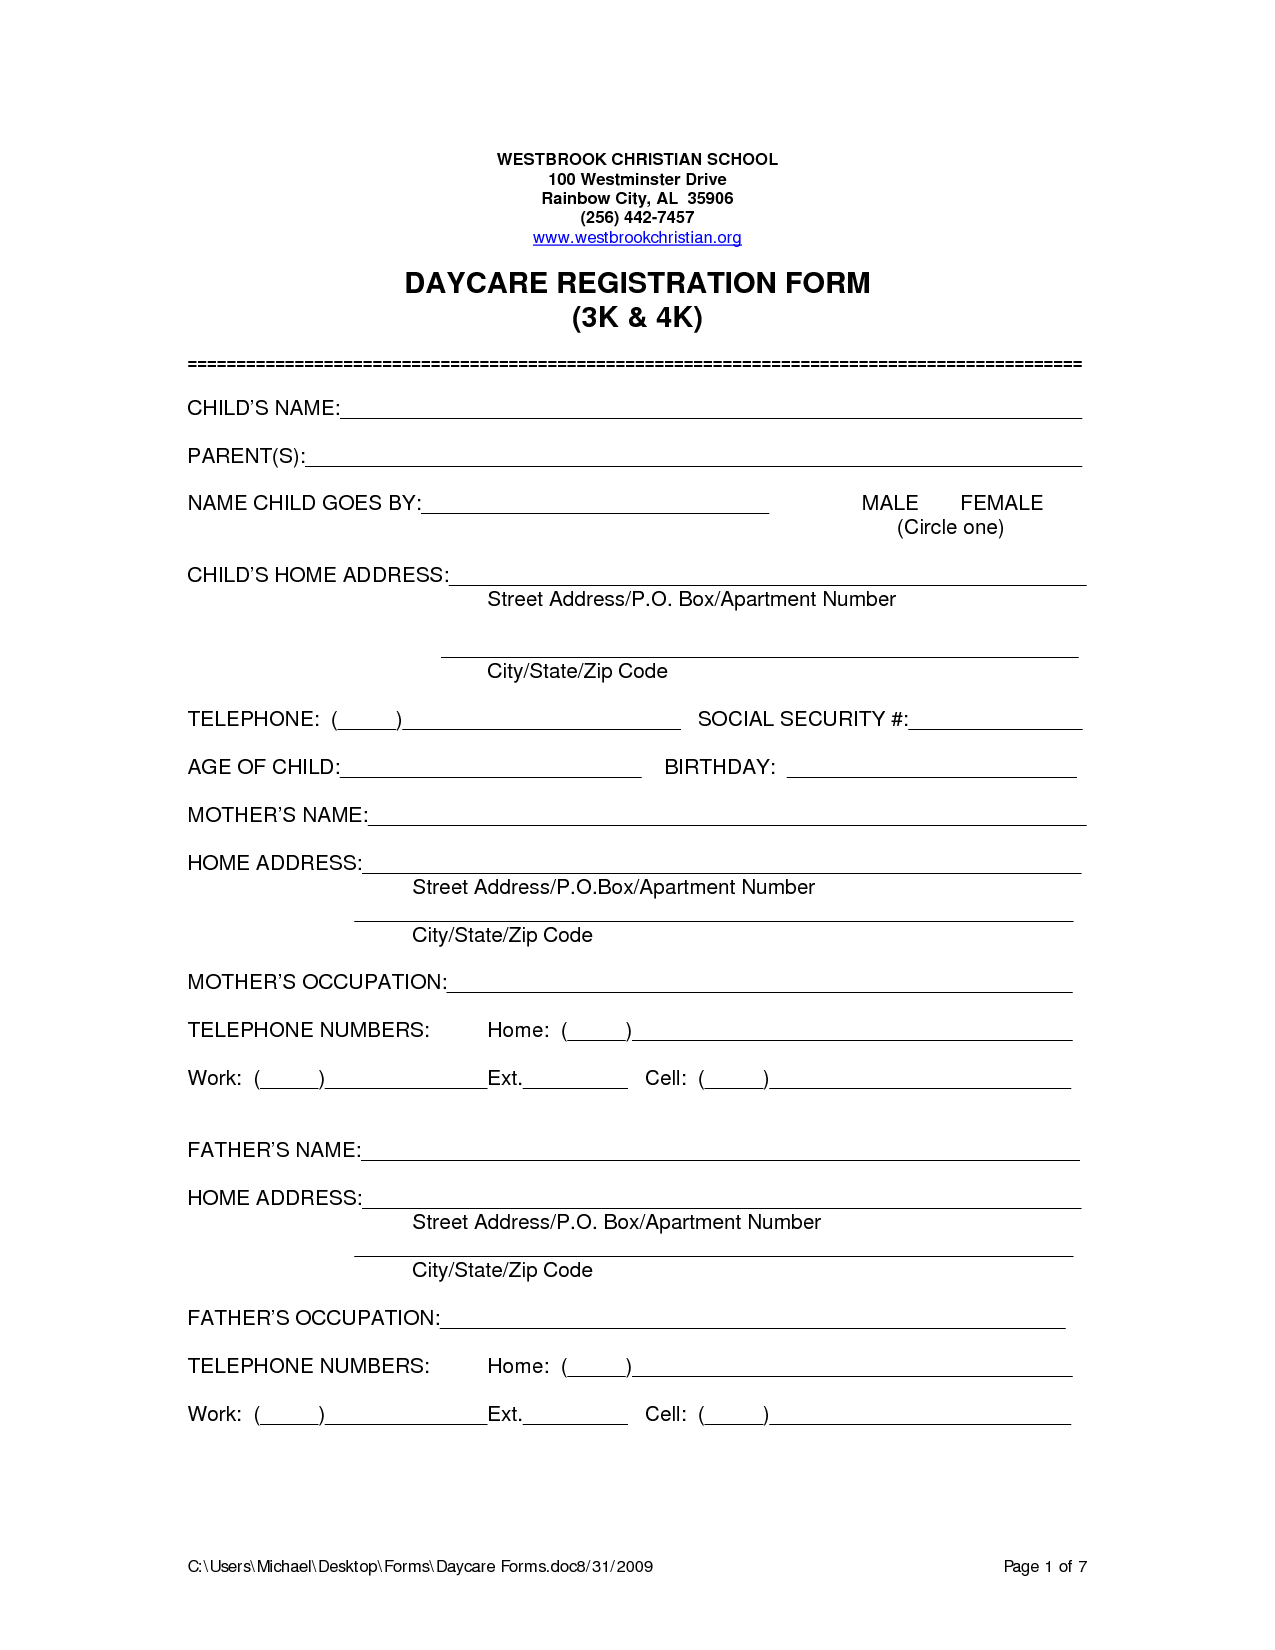 Daycare Forms Printable Free